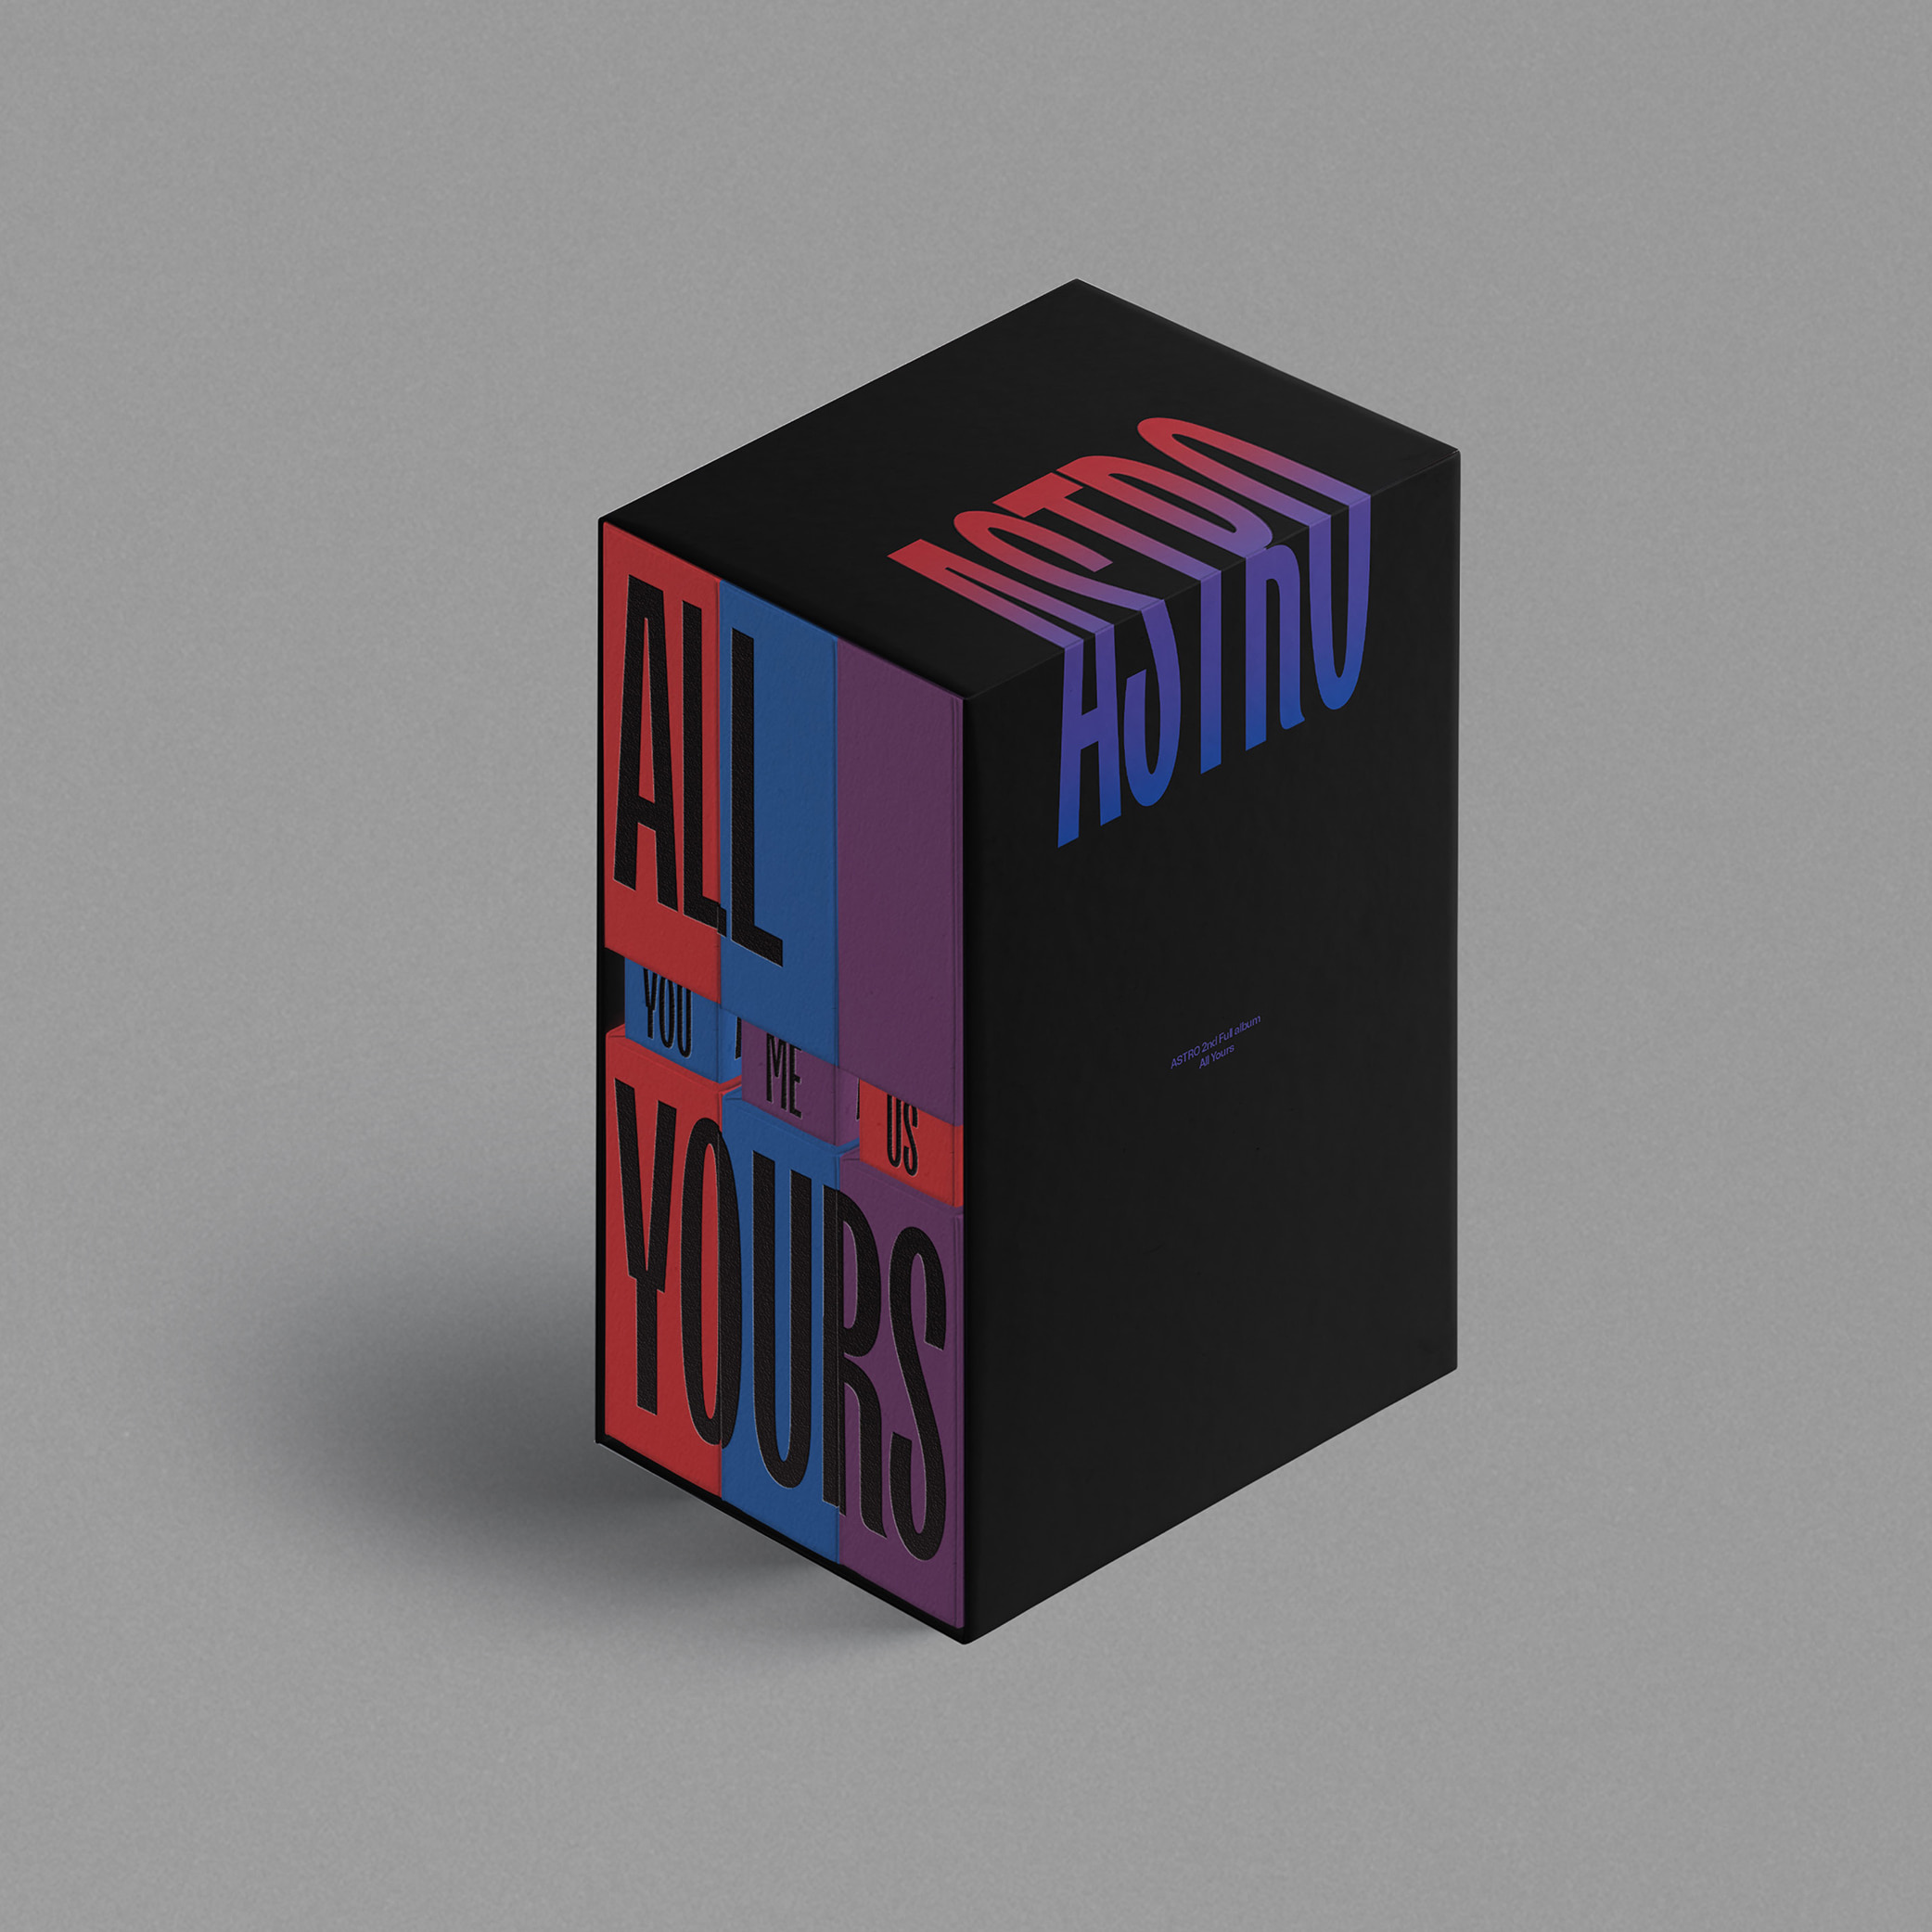 [PRE-ORDER] ASTRO - Album Vol.2 [All Yours] (Set ver.) (Limited Edition)케이팝스토어(kpop store)